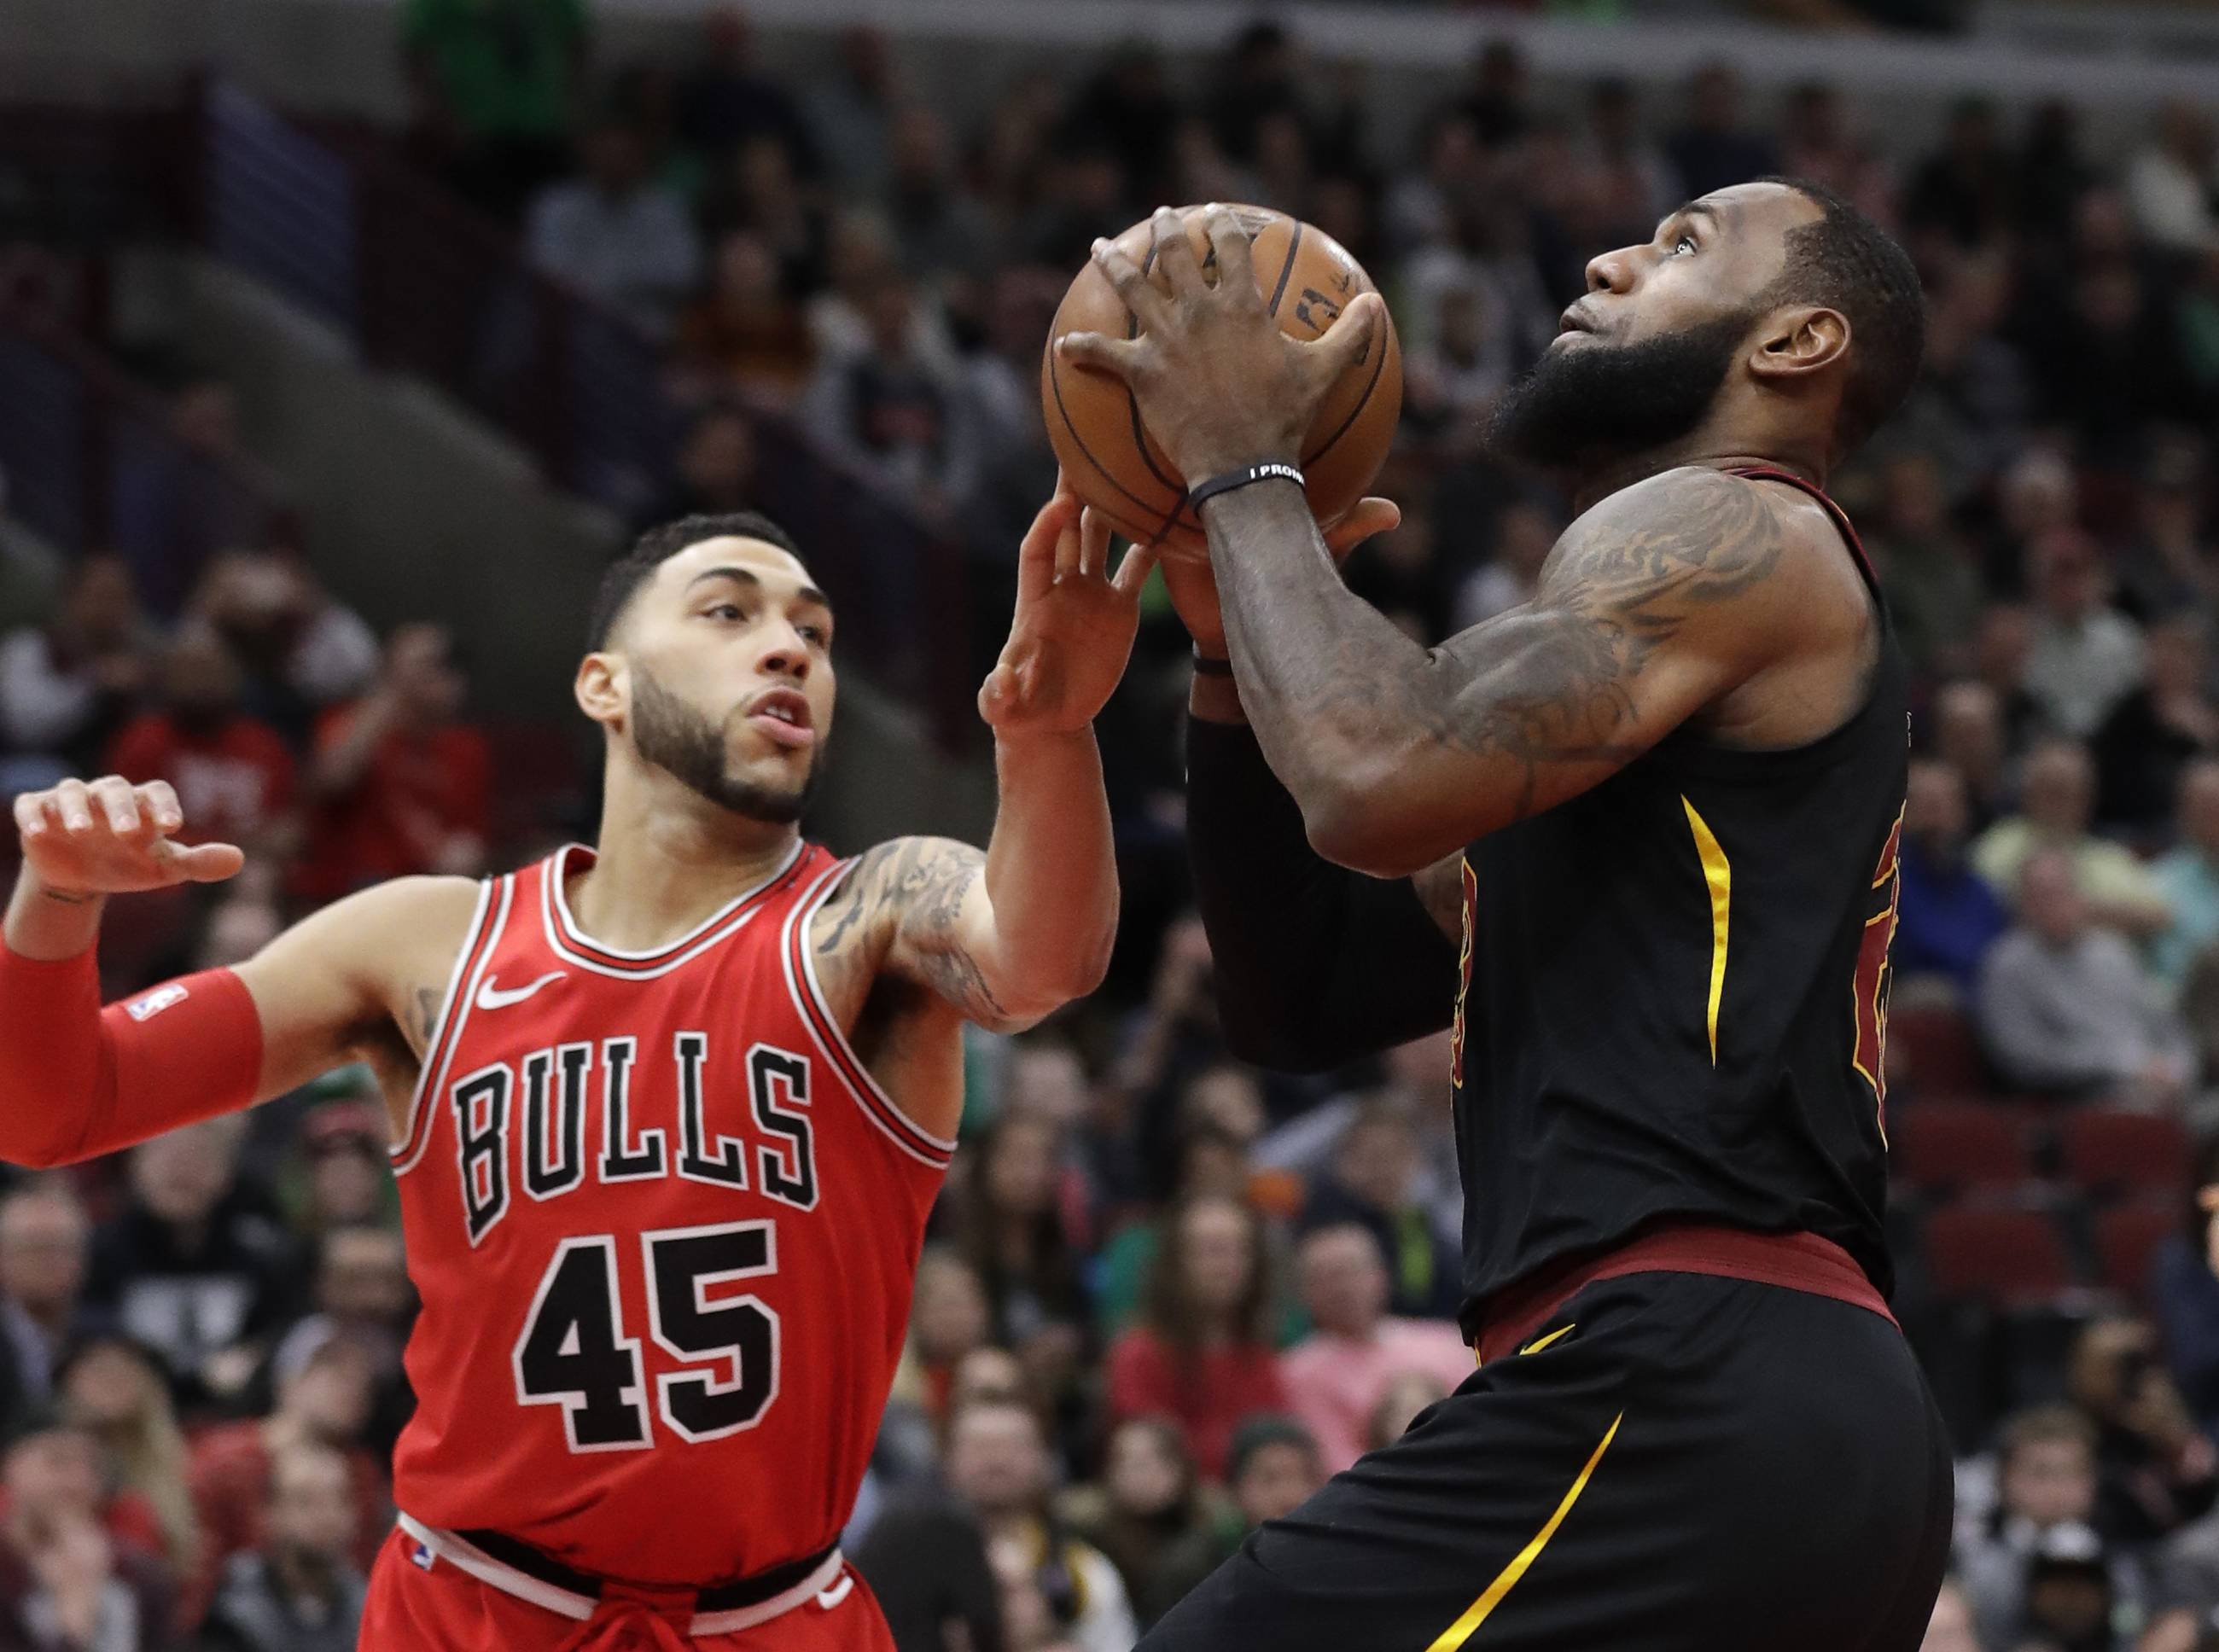 Cleveland Cavaliers forward LeBron James, right, drives to the basket against Chicago Bulls guard Denzel Valentine during the first half of an NBA basketball game Saturday, March 17, 2018, in Chicago. (AP Photo/Nam Y. Huh)